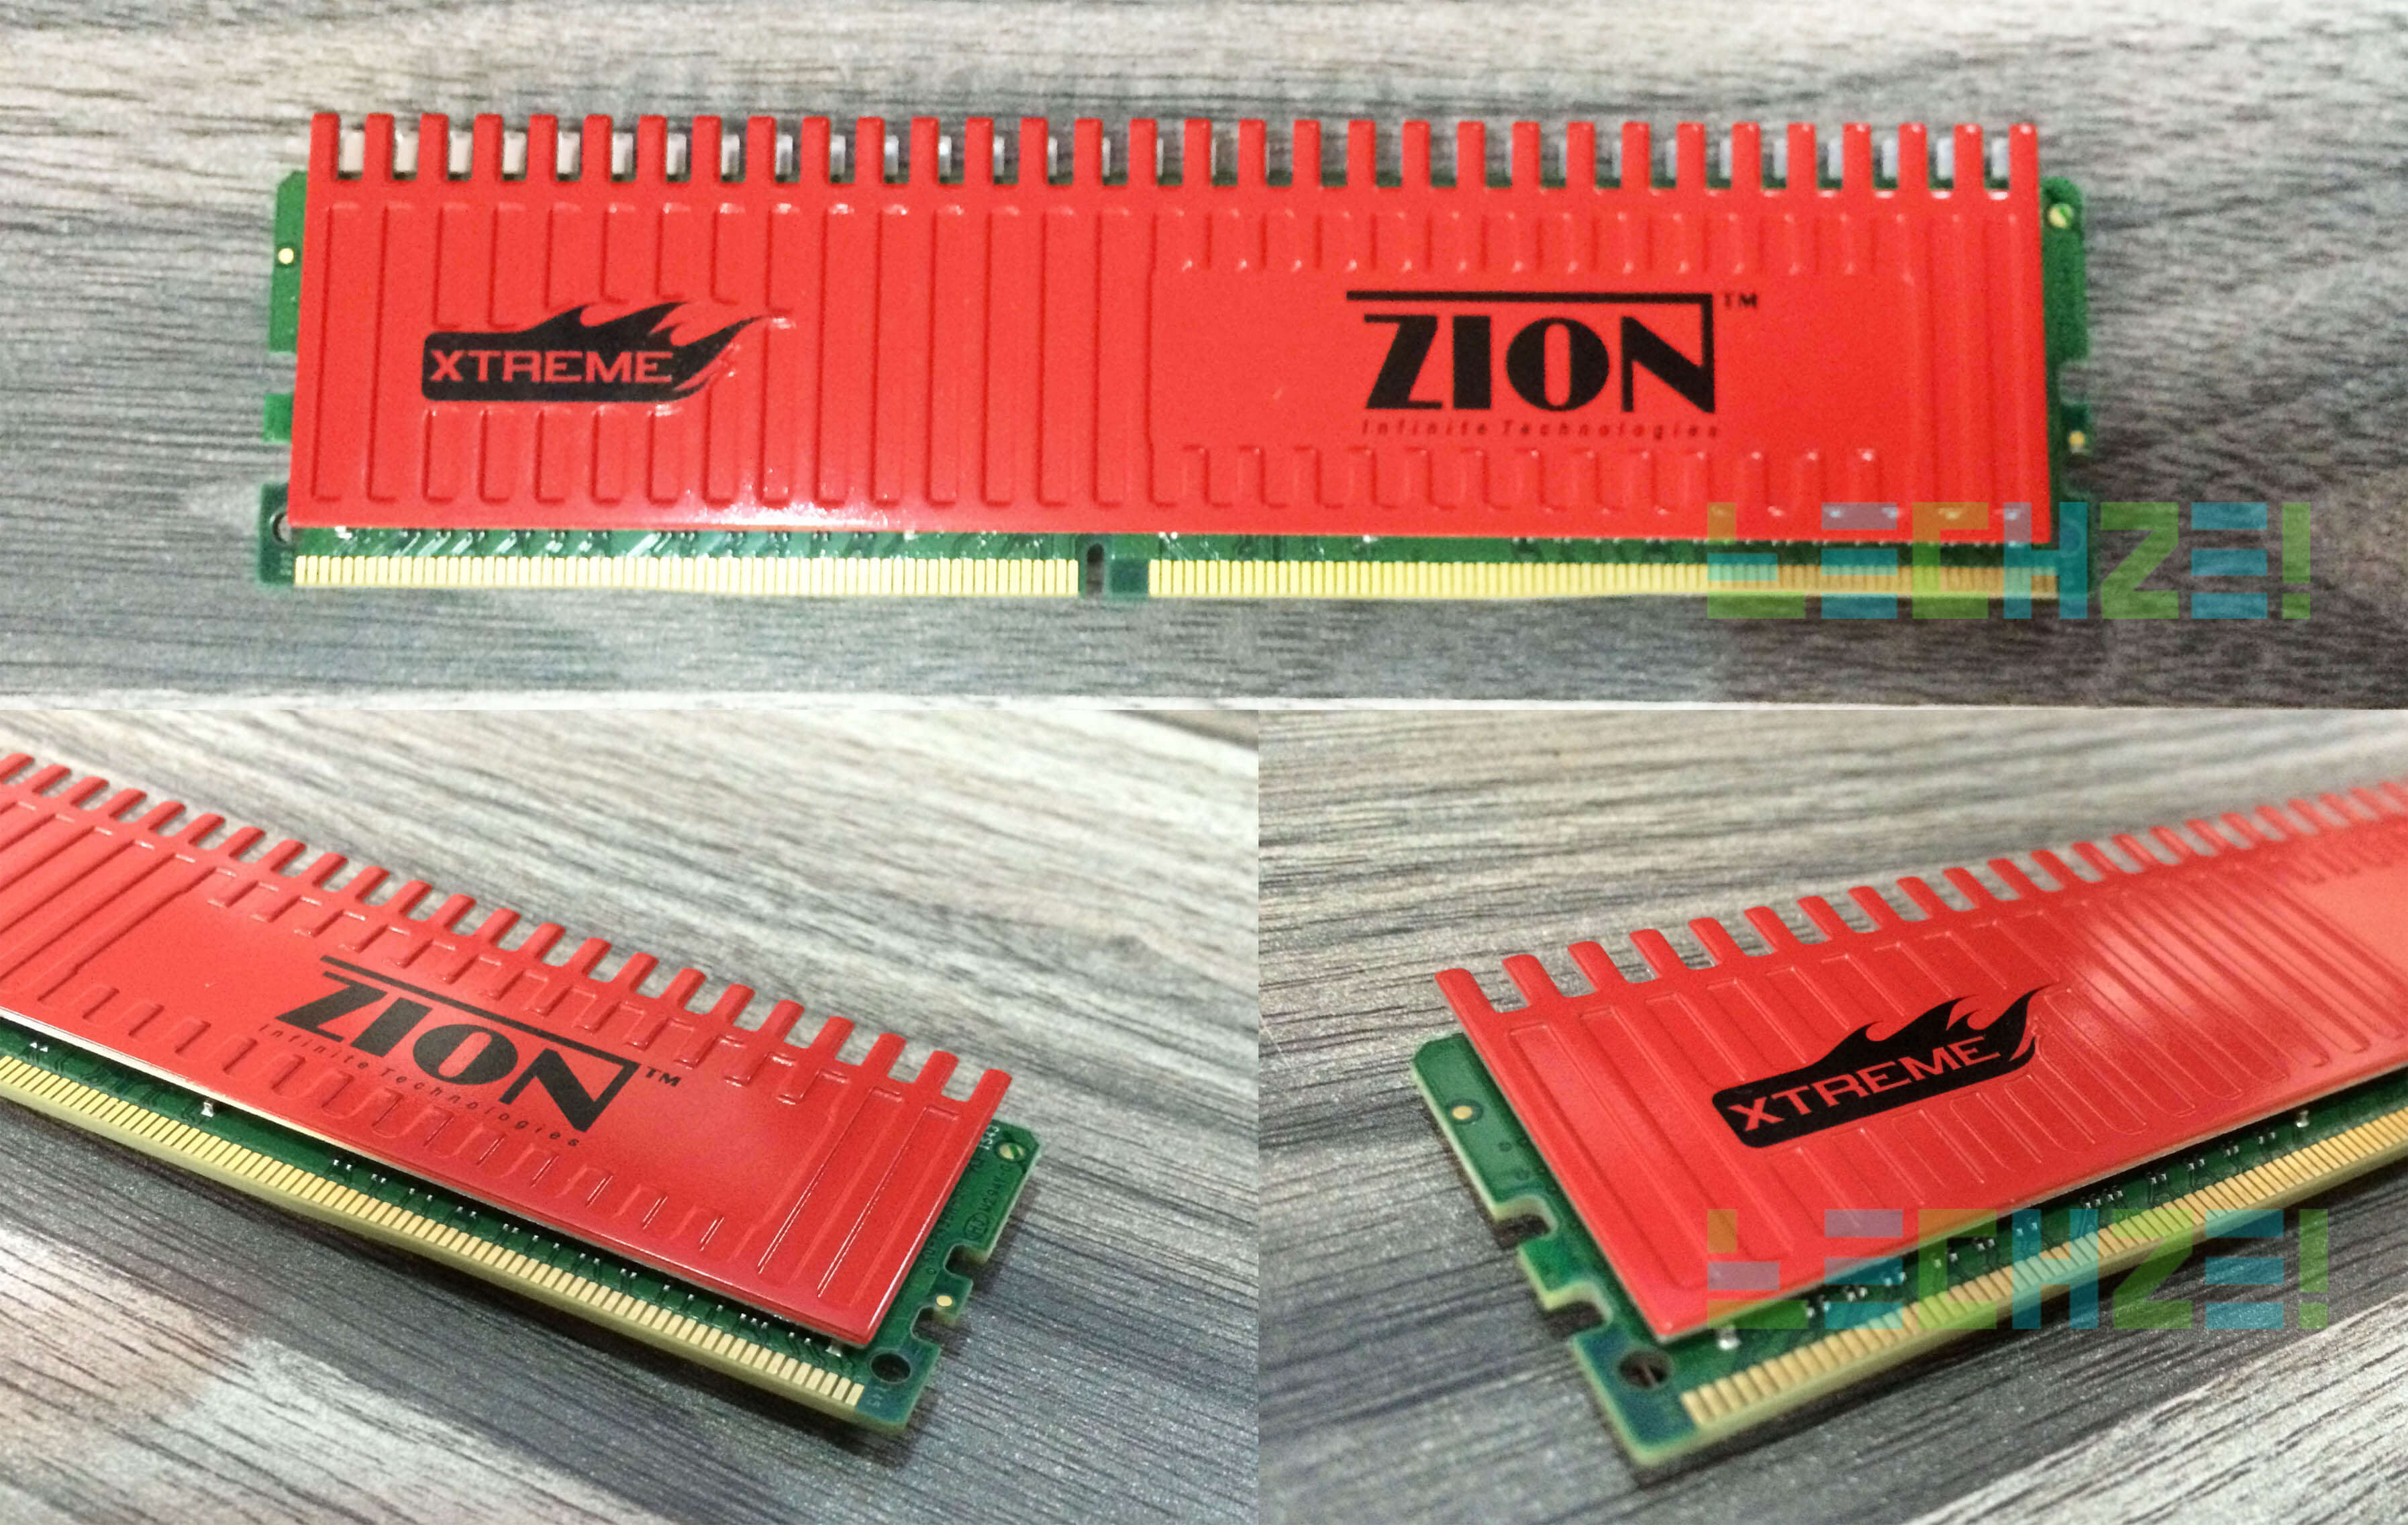 ZION XTREME DDR4 8GB @ 2400 MHz RAM Review